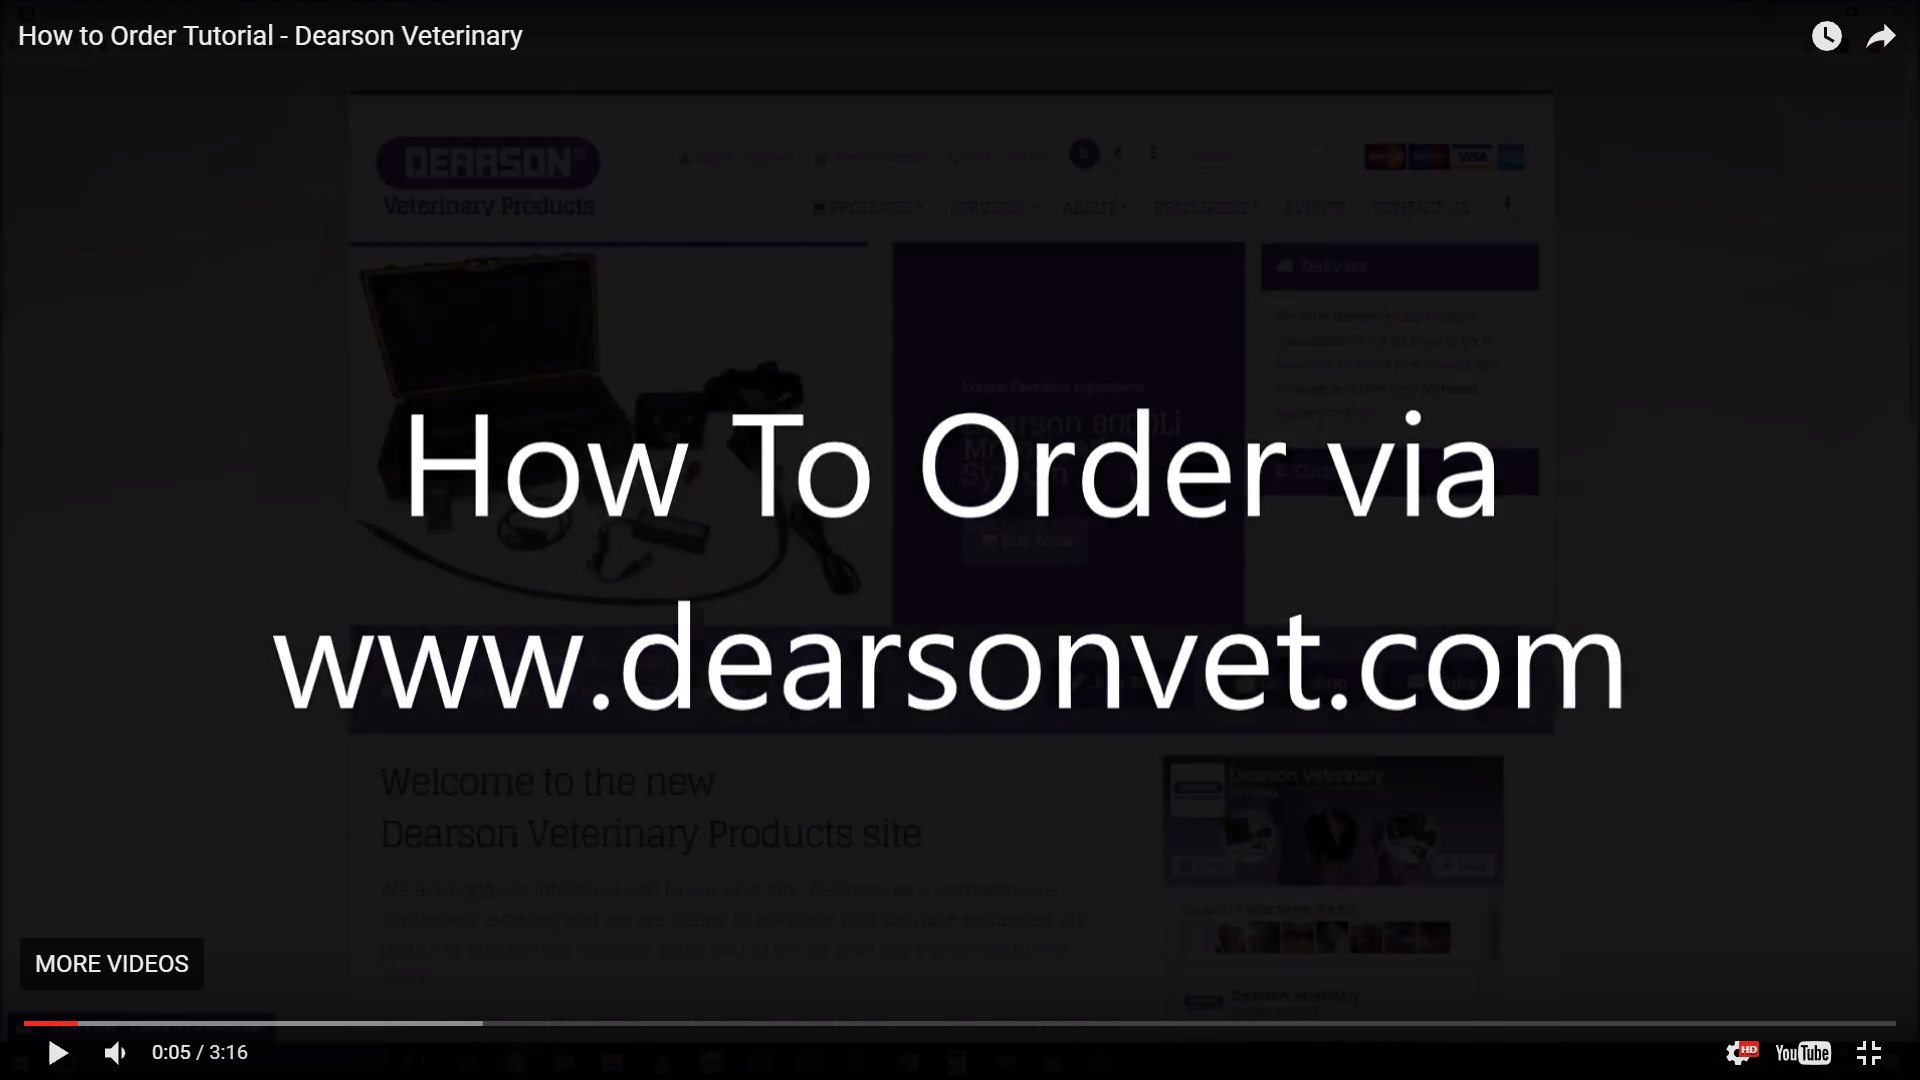 How to Order - Tutorial